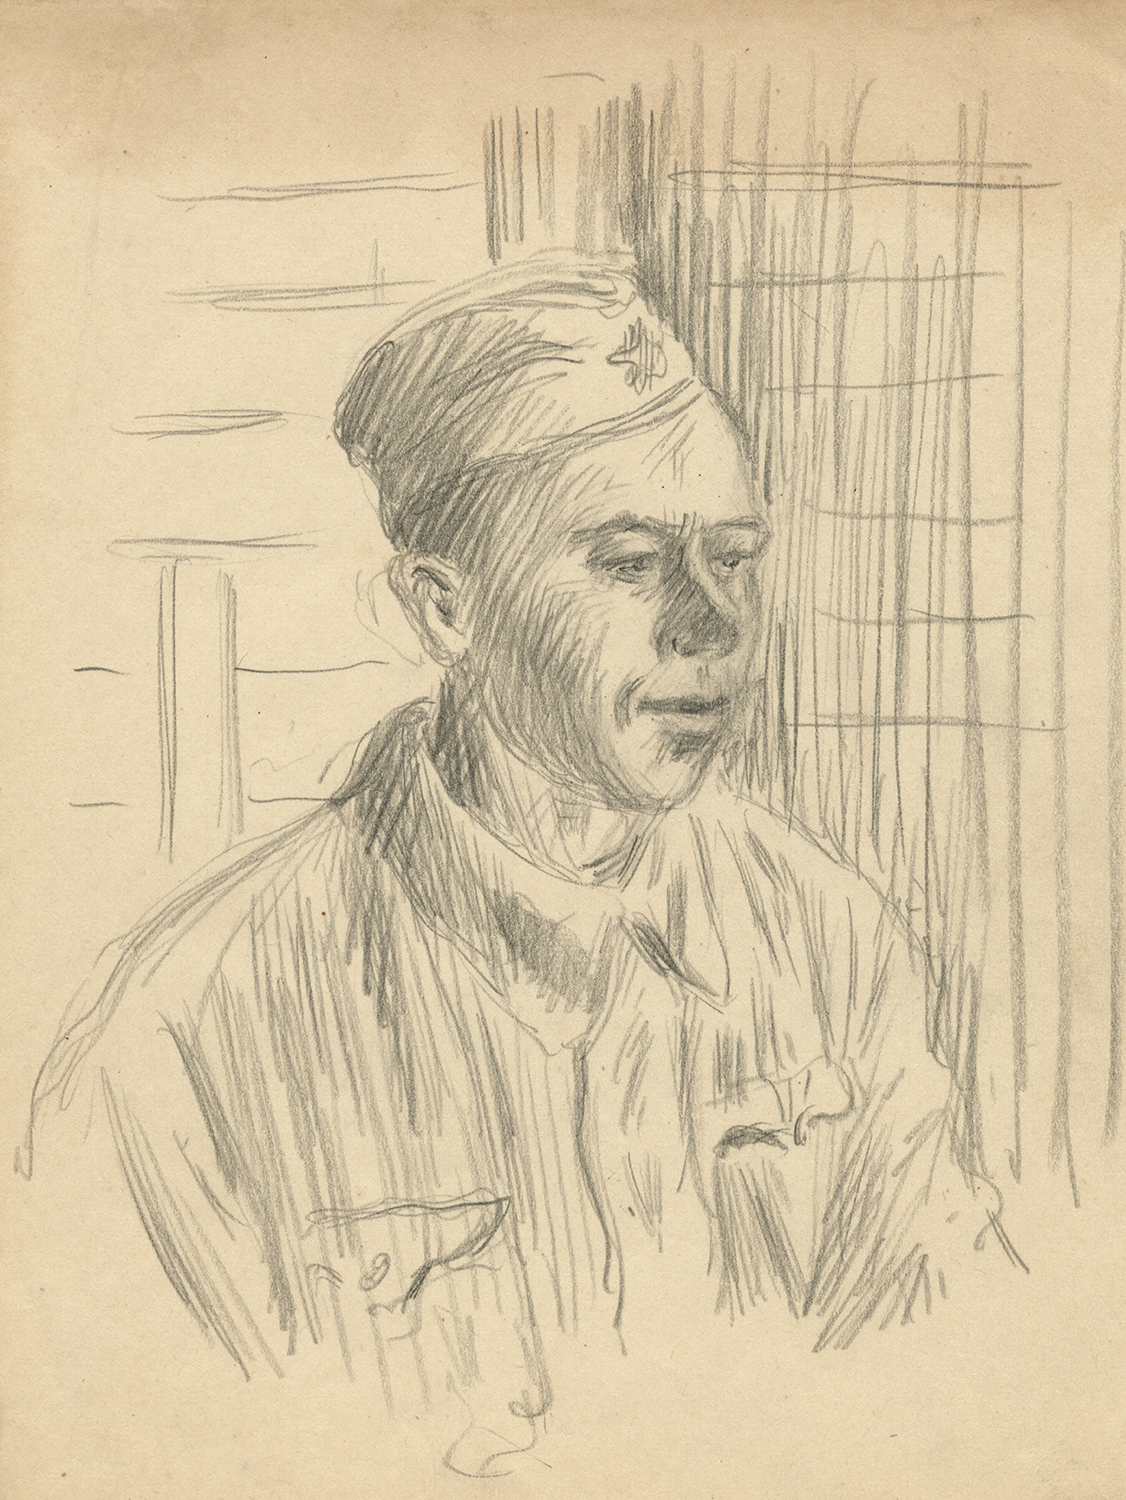 Sketch by Eugene Kogan of soldier.